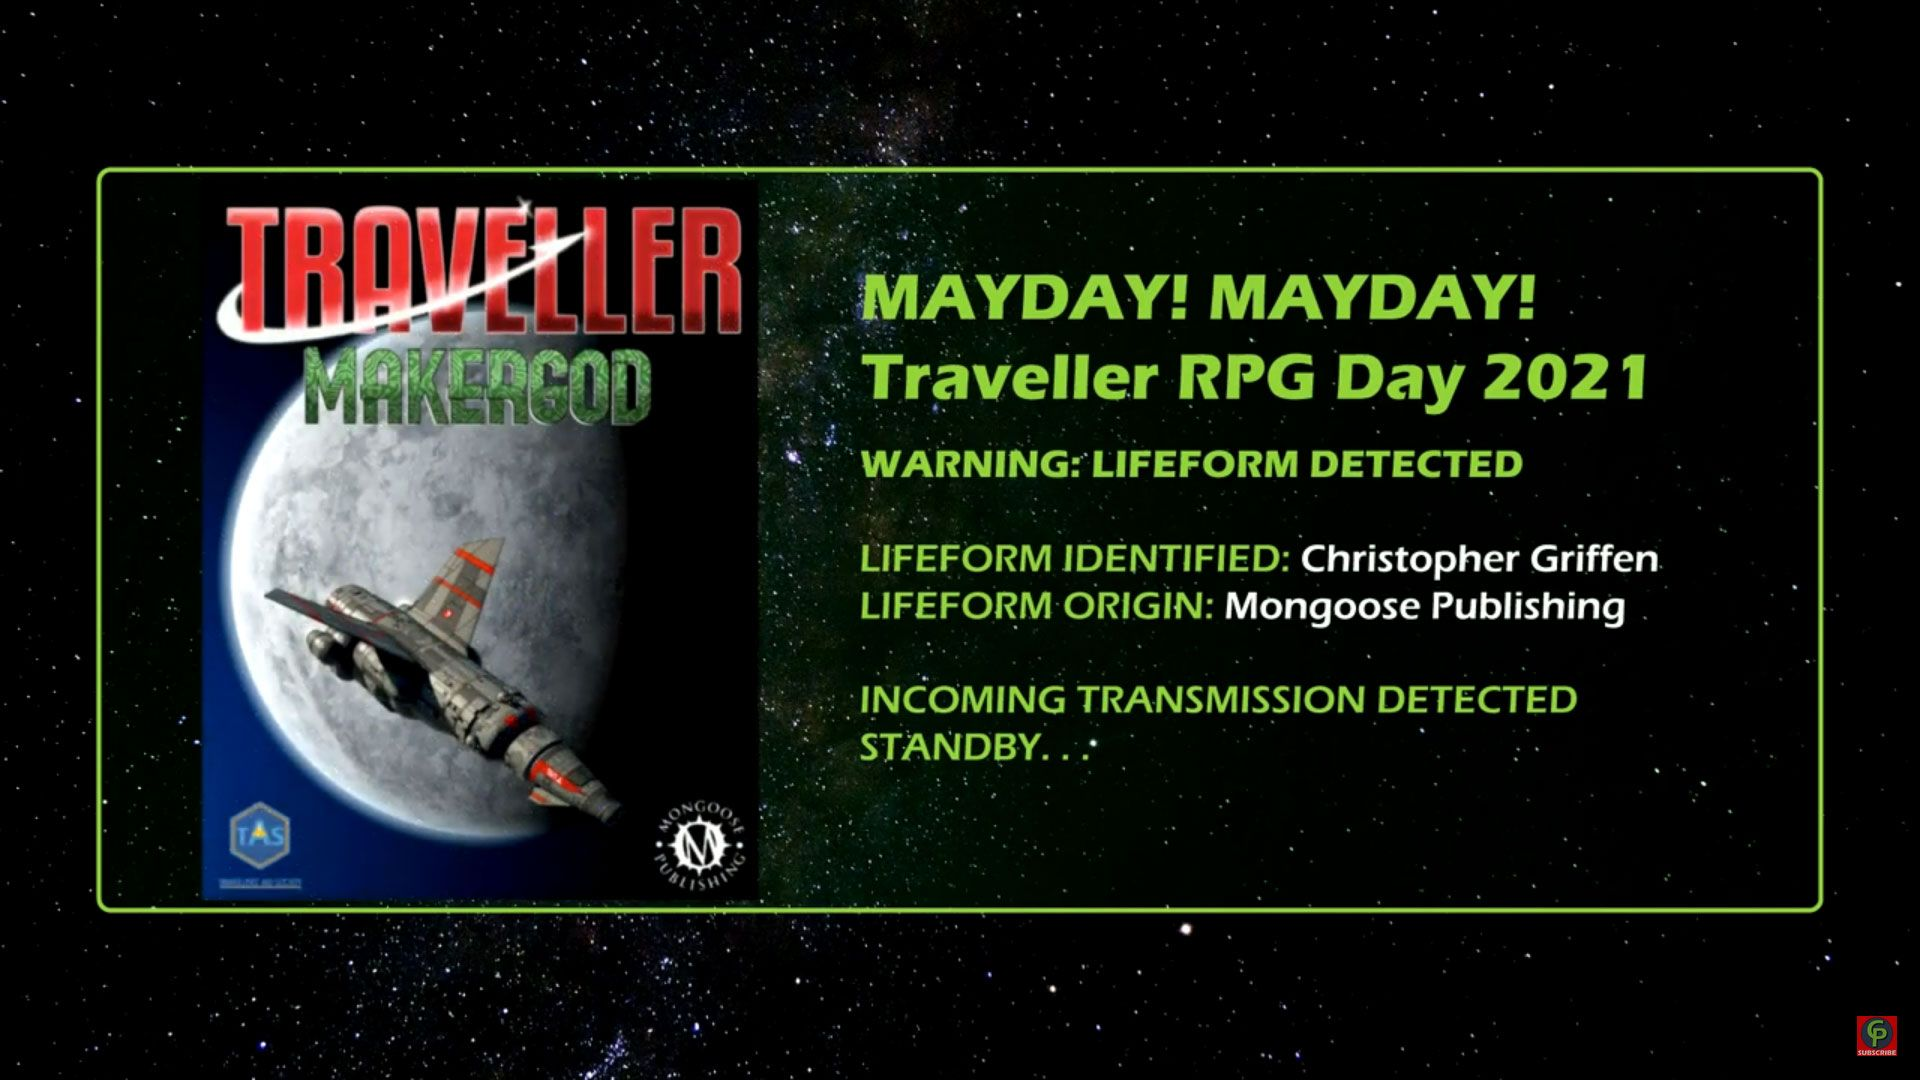 christopher griffen of mongoose publishing Interview Traveller RPG Mayday 2021 title